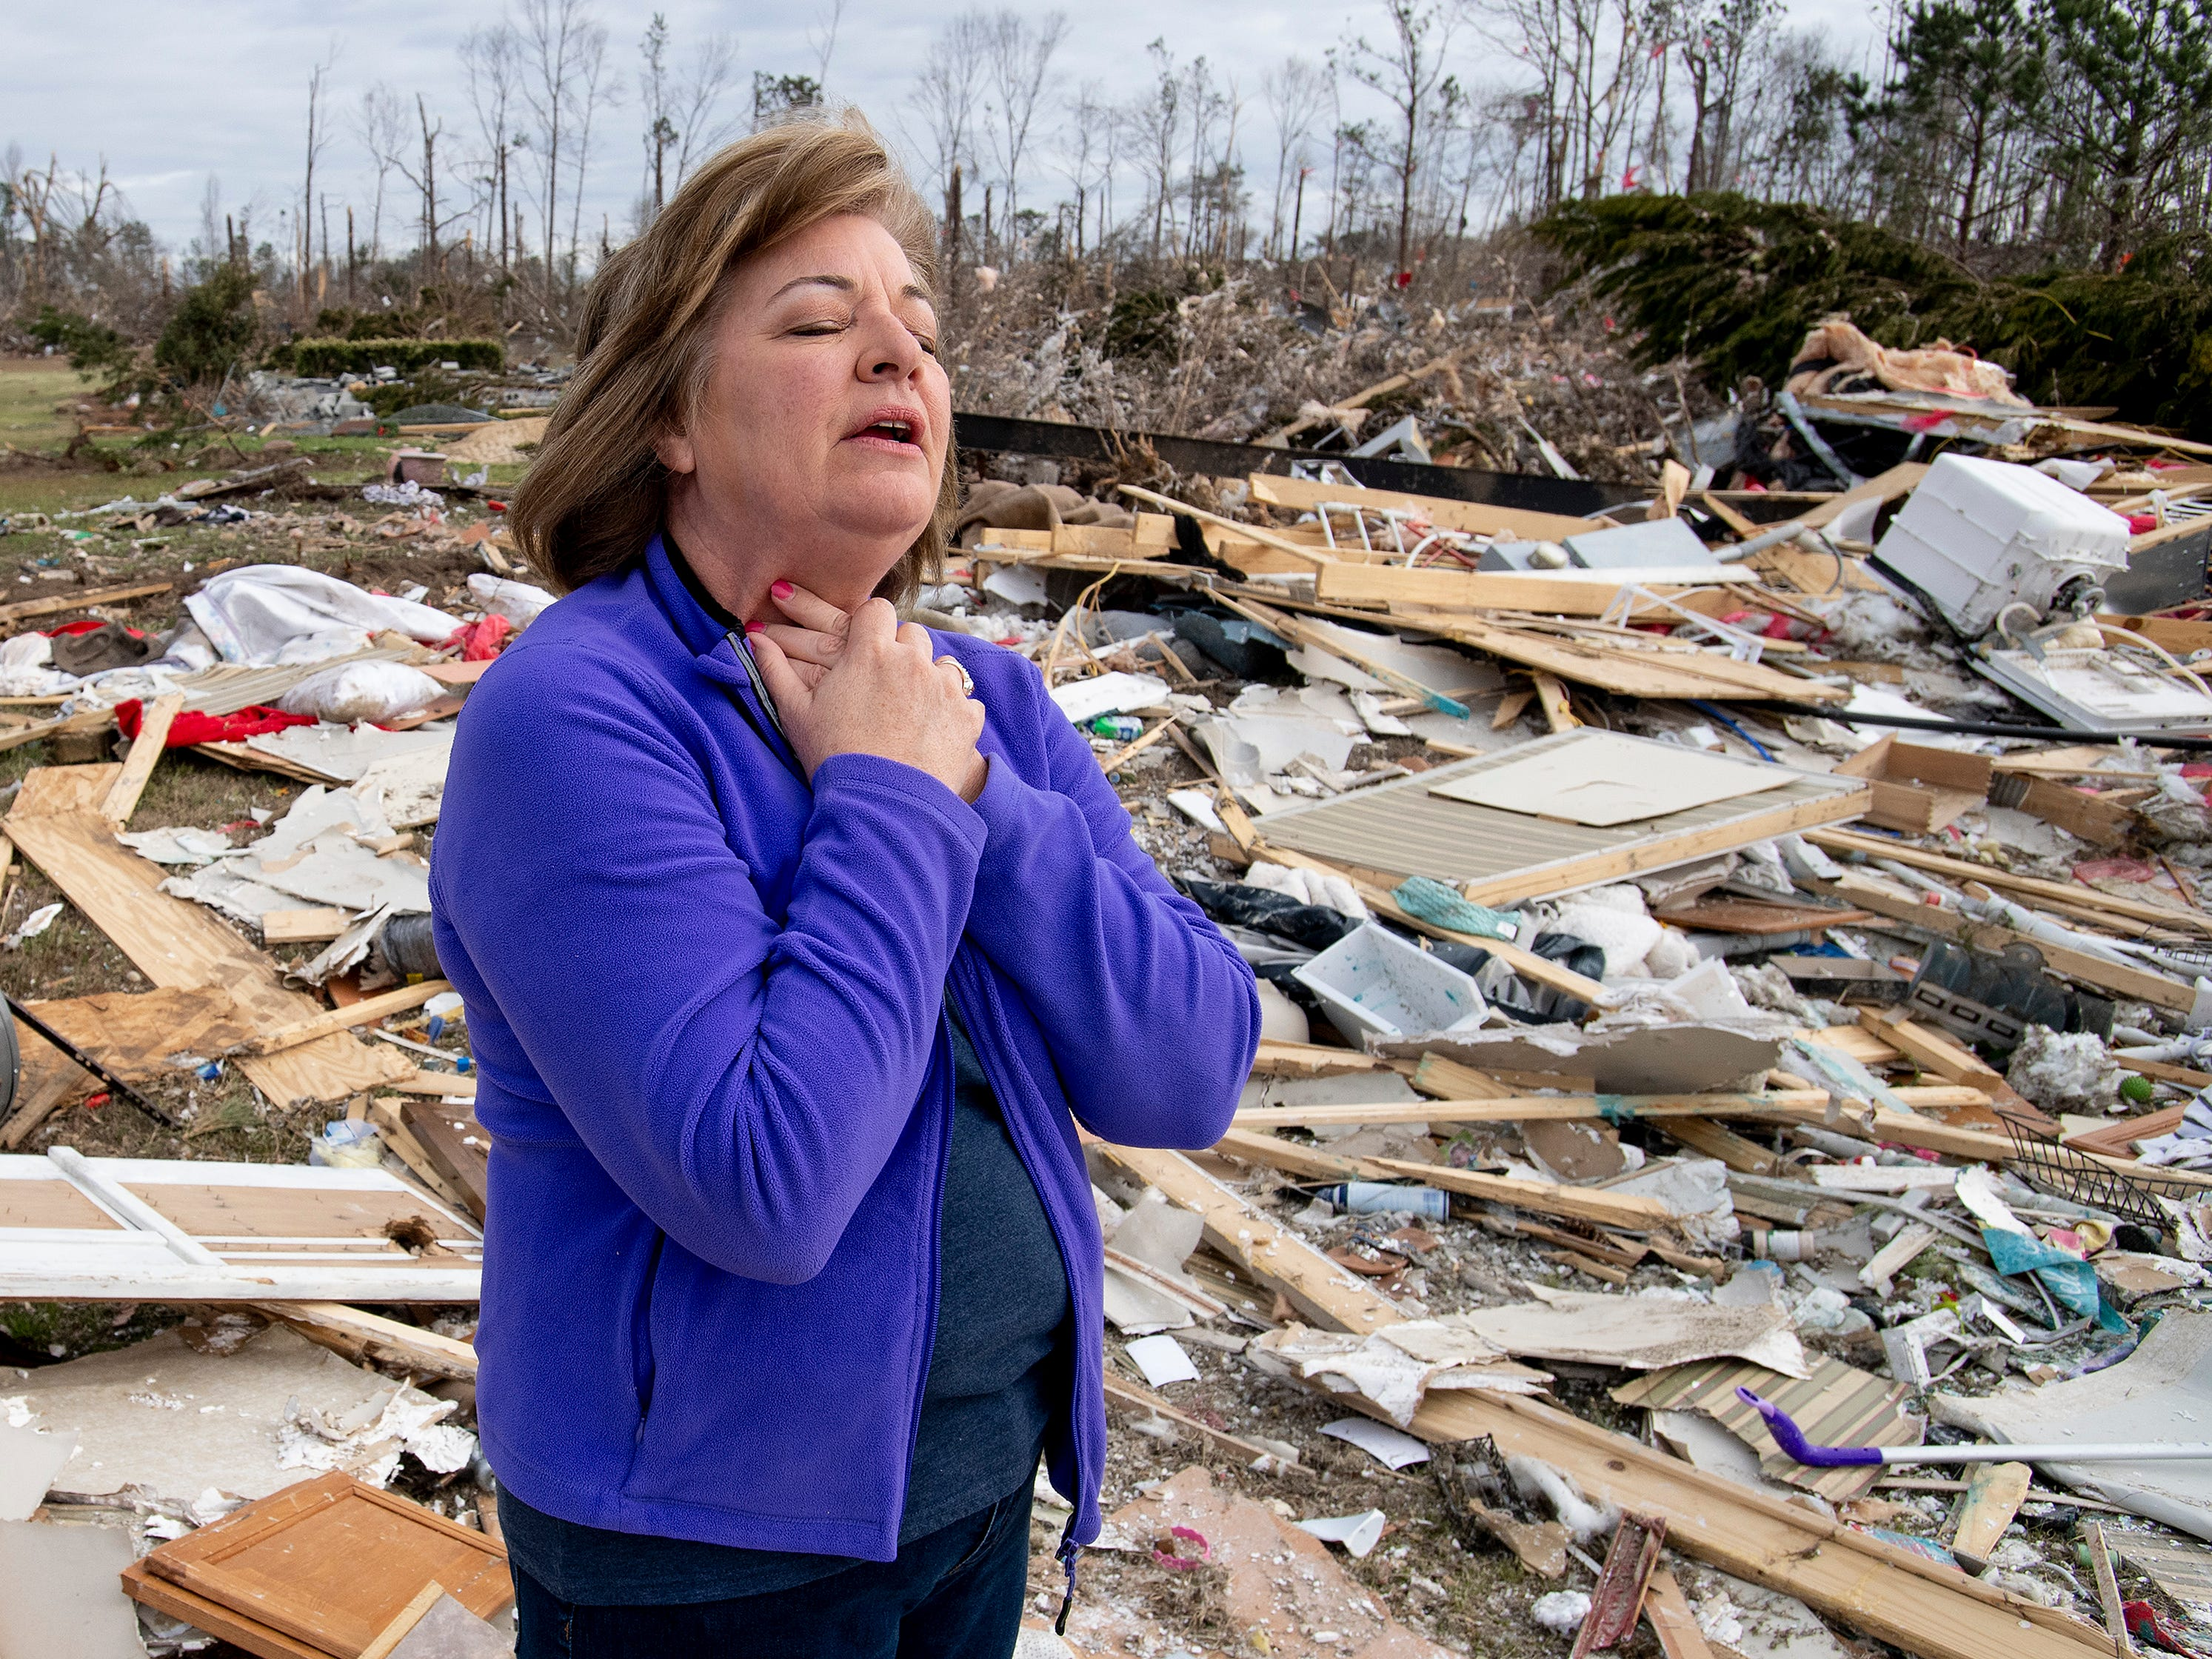 Cindy Sanford recounts barely escaping the Sunday tornado as she stands among the debris that was her home in Beauregard, Ala., on Friday March 8, 2019.